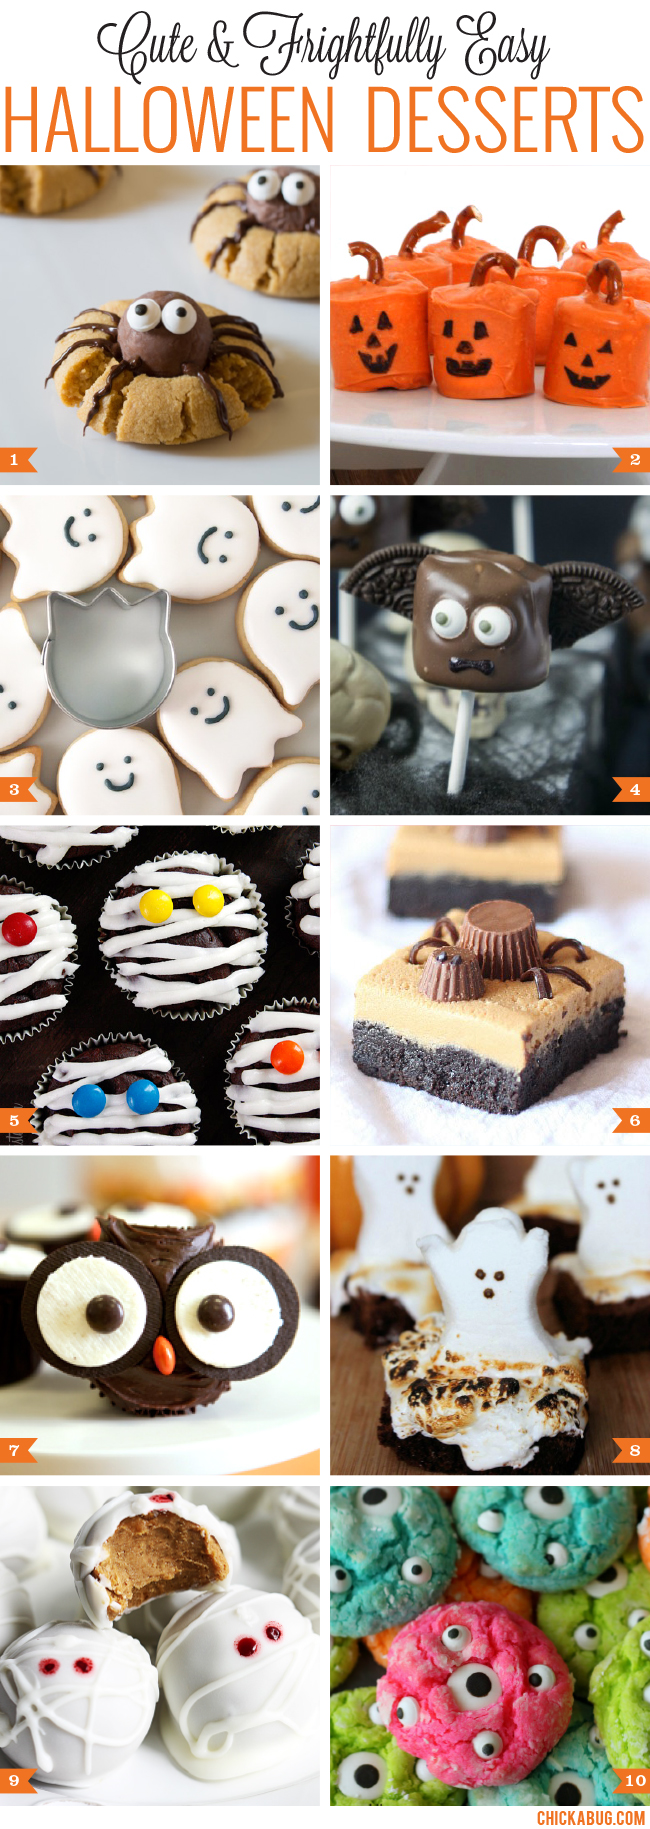 Cute and easy Halloween desserts!